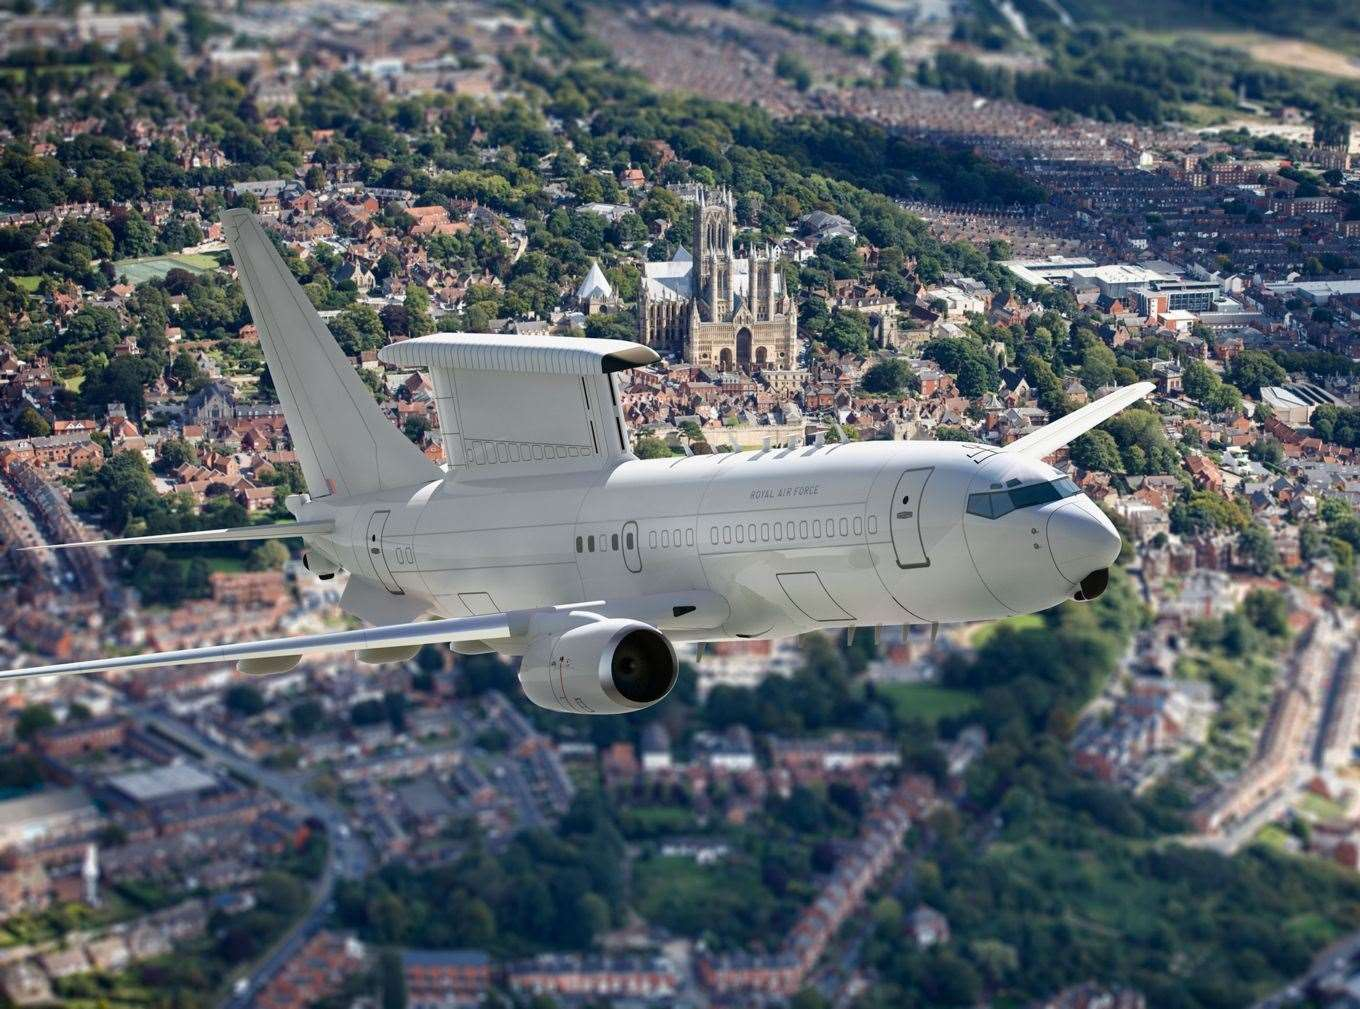 An artist's impression of the E-7 Wedgetail aircraft. Image: RAF (8055210)